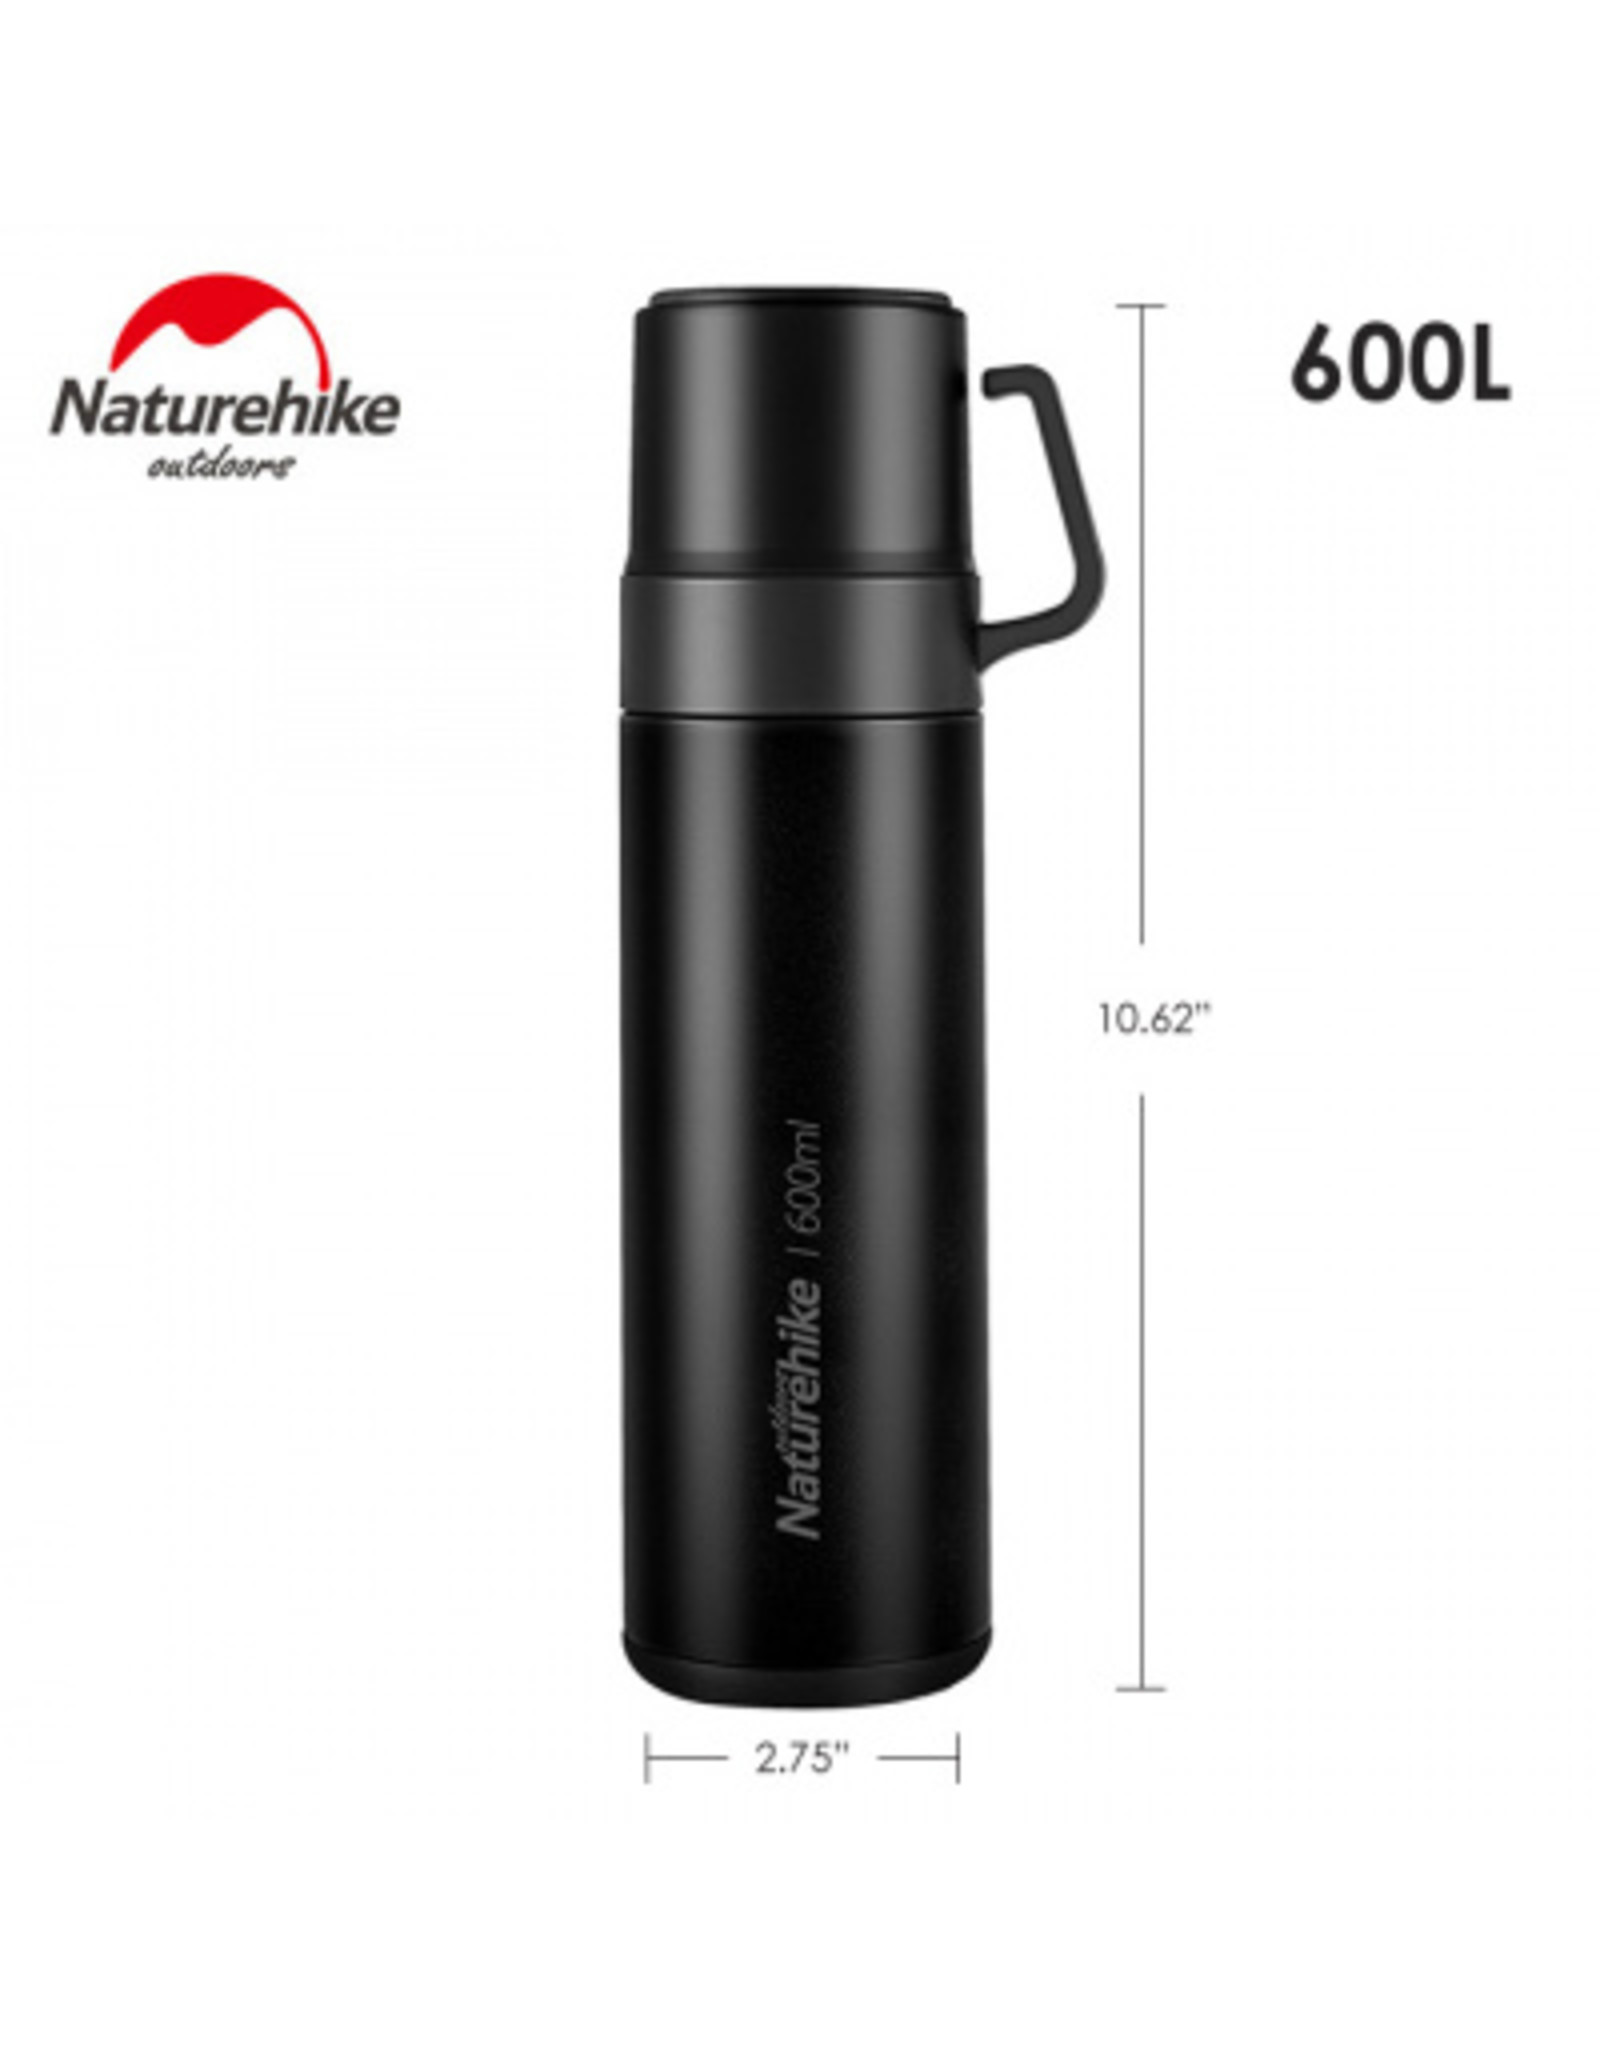 CIRCLE IMPORTS NATURE HIKE 304 STAINLESS THERMOS 600ML